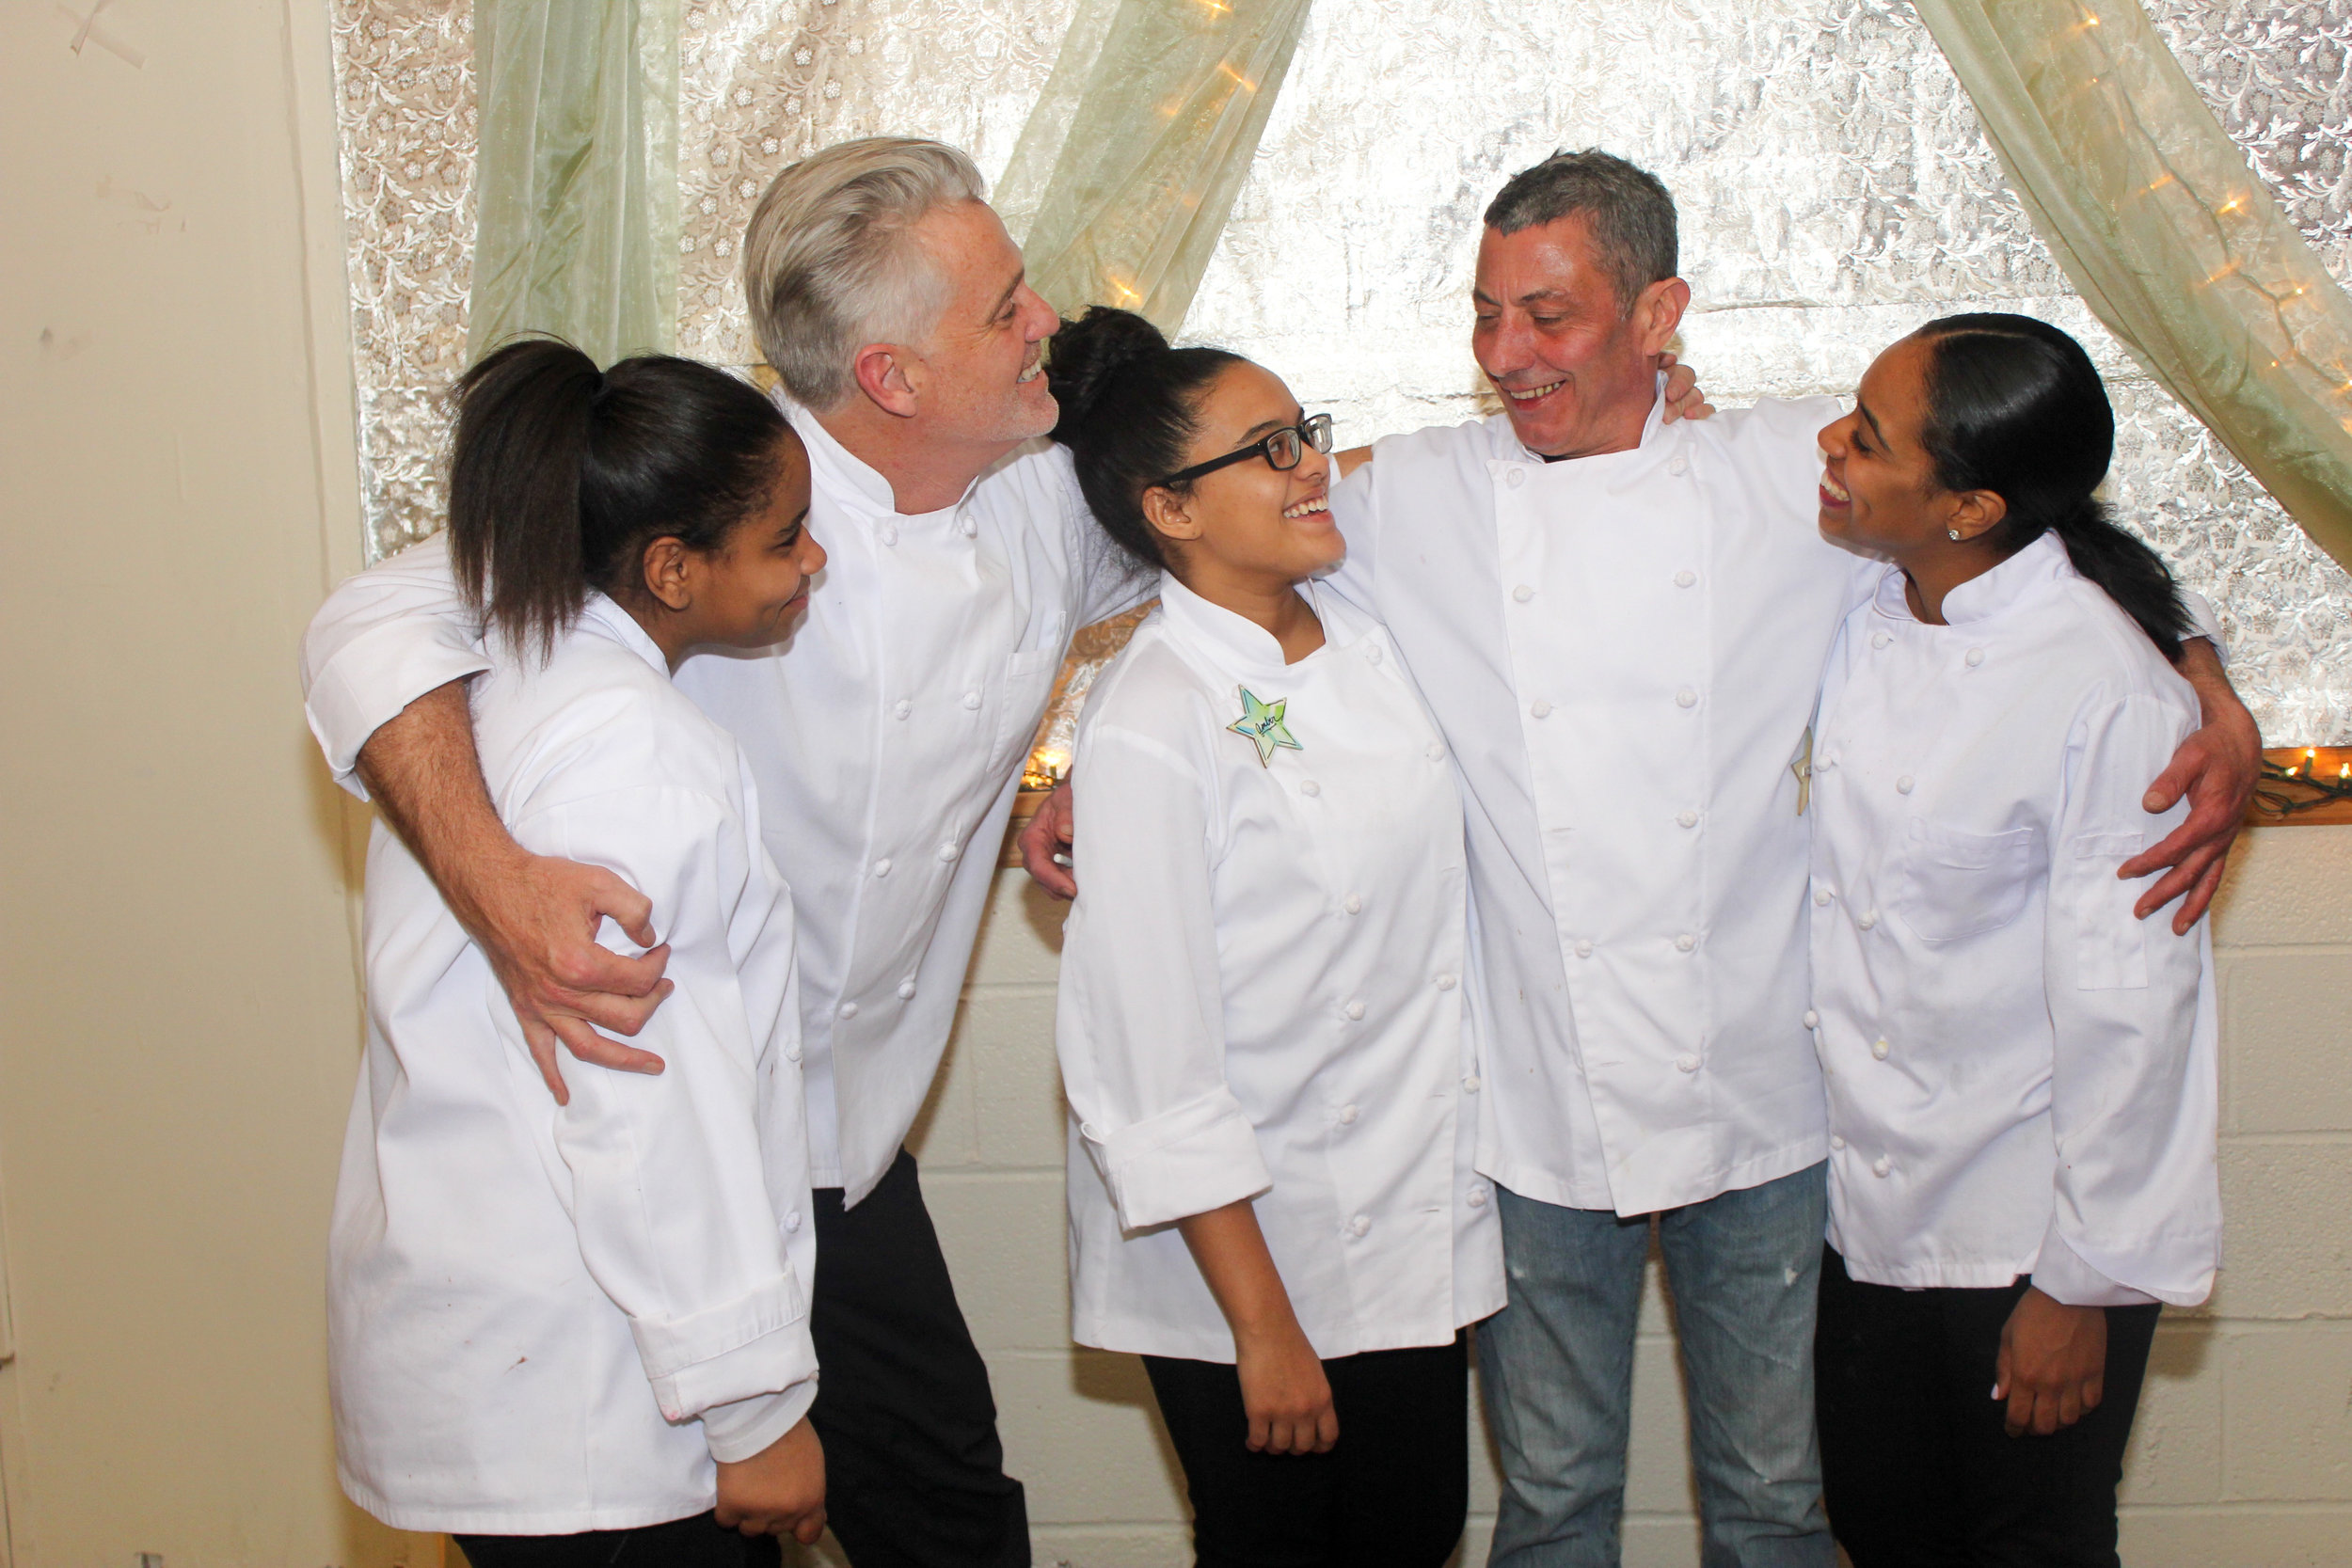 Ascension Culinary Institute Youth Kids NYC nonprofitIMG_9369.jpg